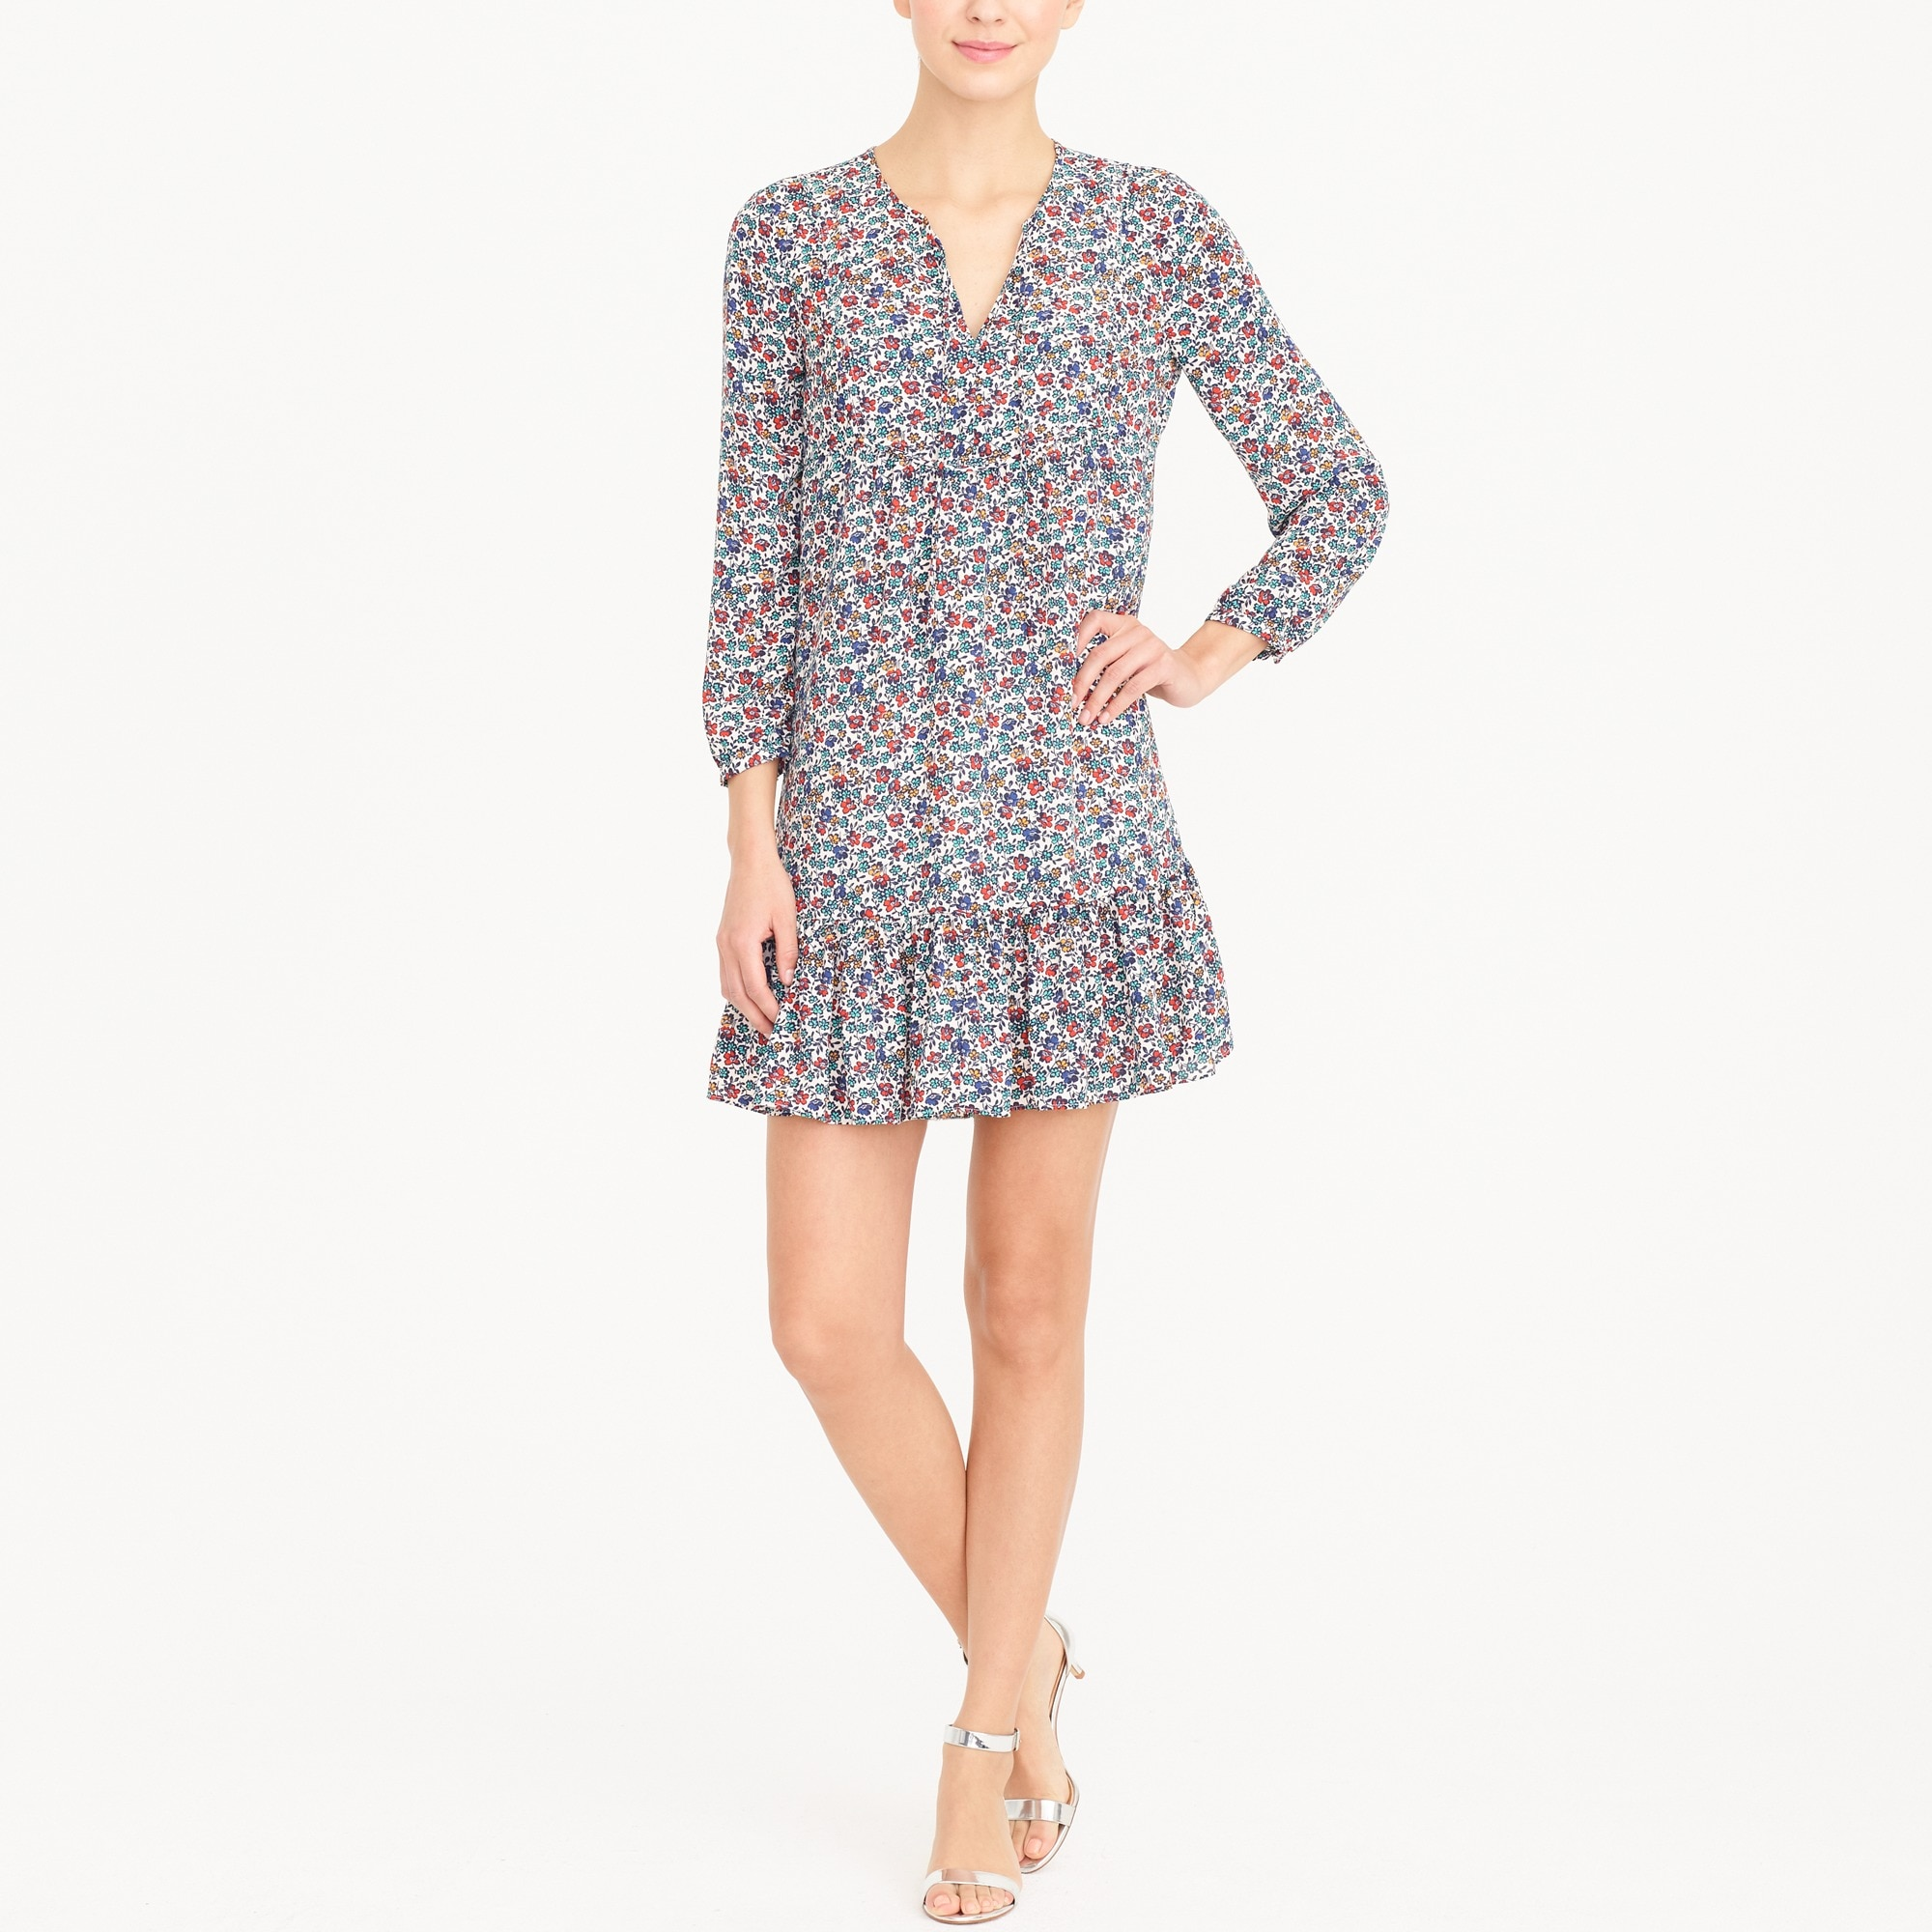 Relaxed printed dress factorywomen new arrivals c